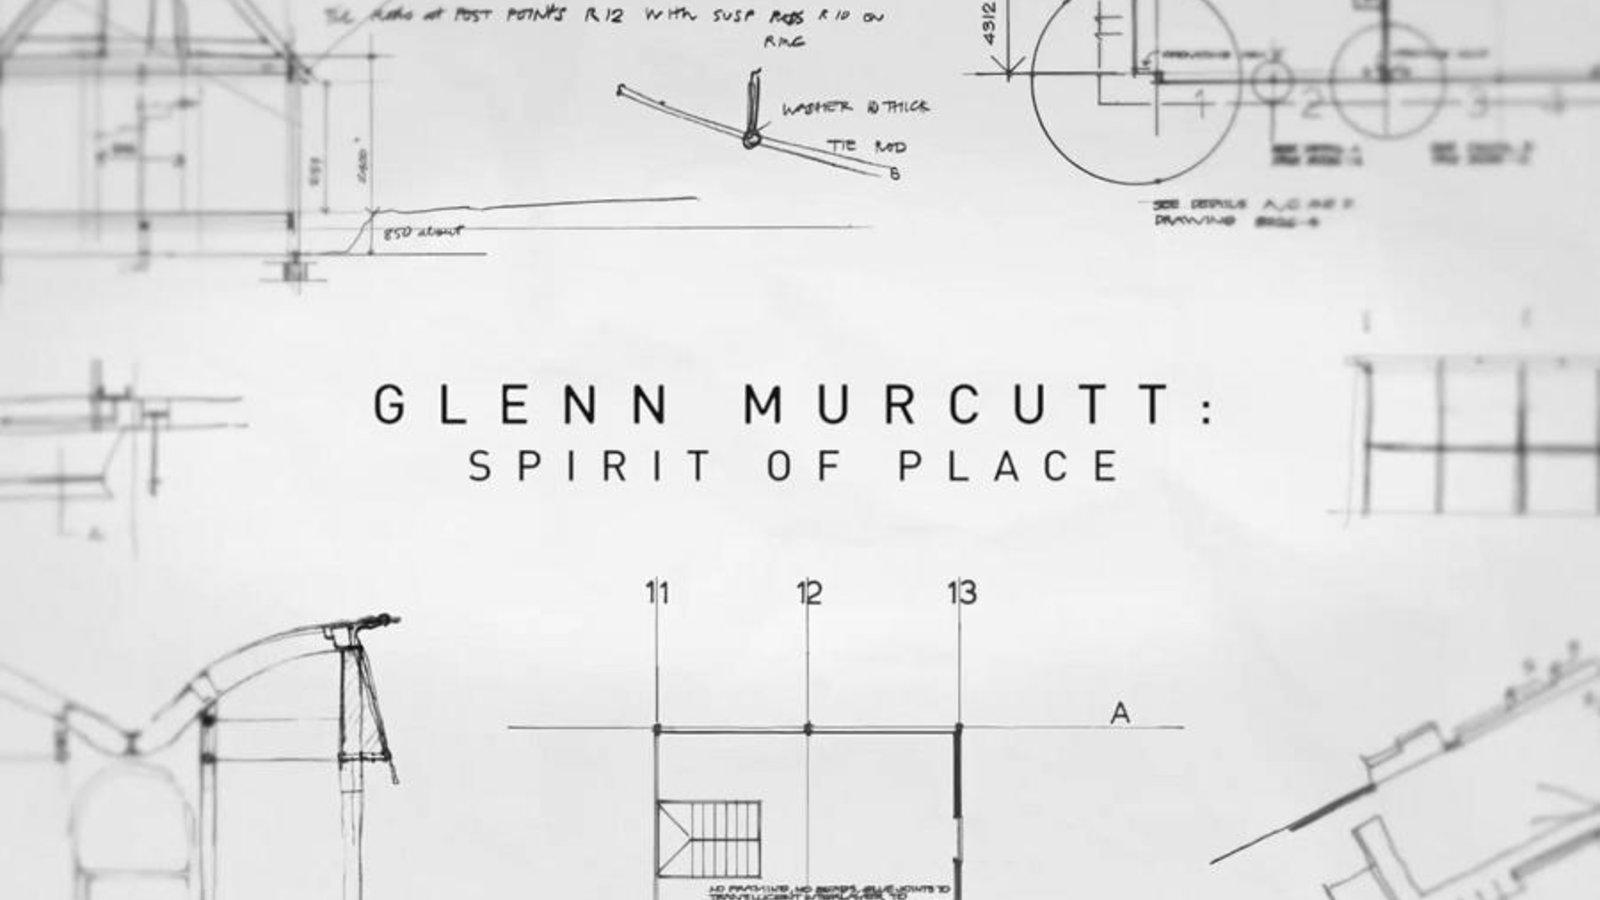 Glenn Murcutt: Spirit of Place - The Construction of a Mosque for an Islamic Community in Melbourne